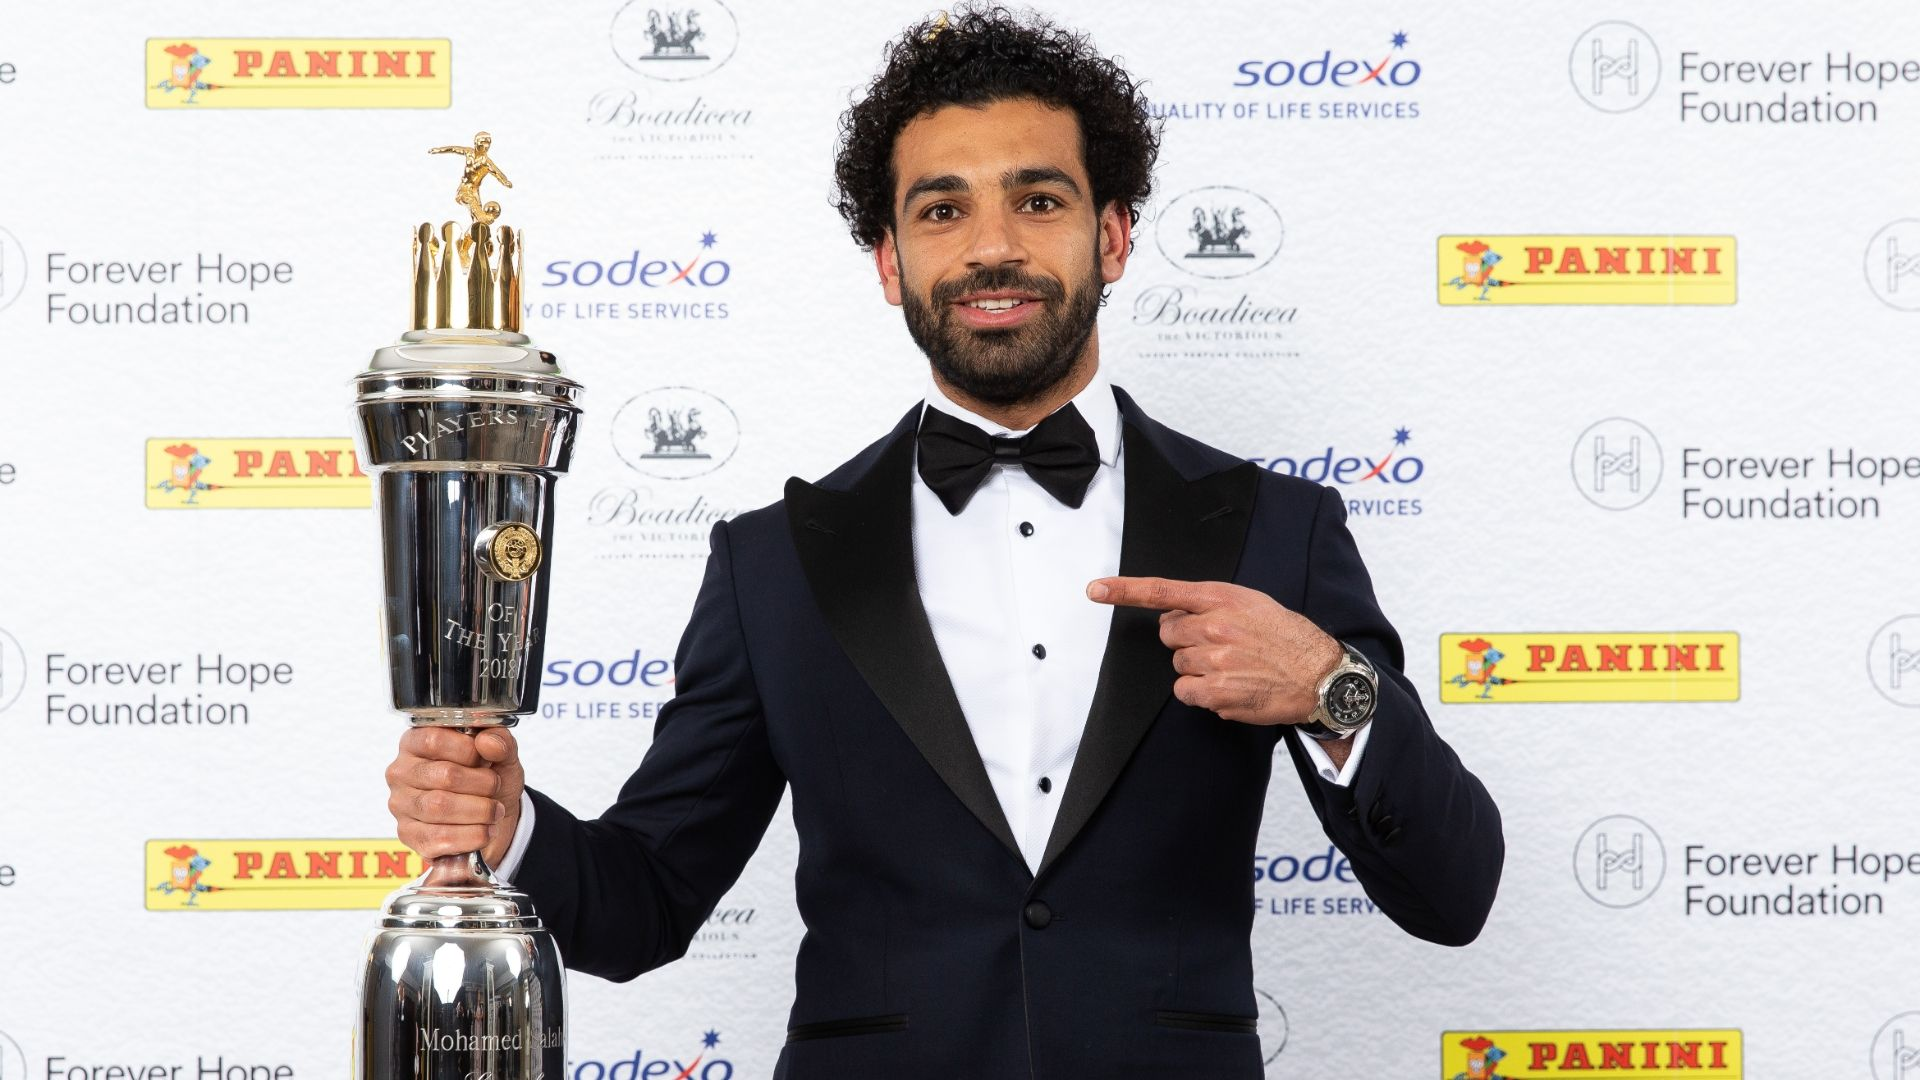 Liverpool's Mohamed Salah embroiled in 'serious issue' over Egypt image rights